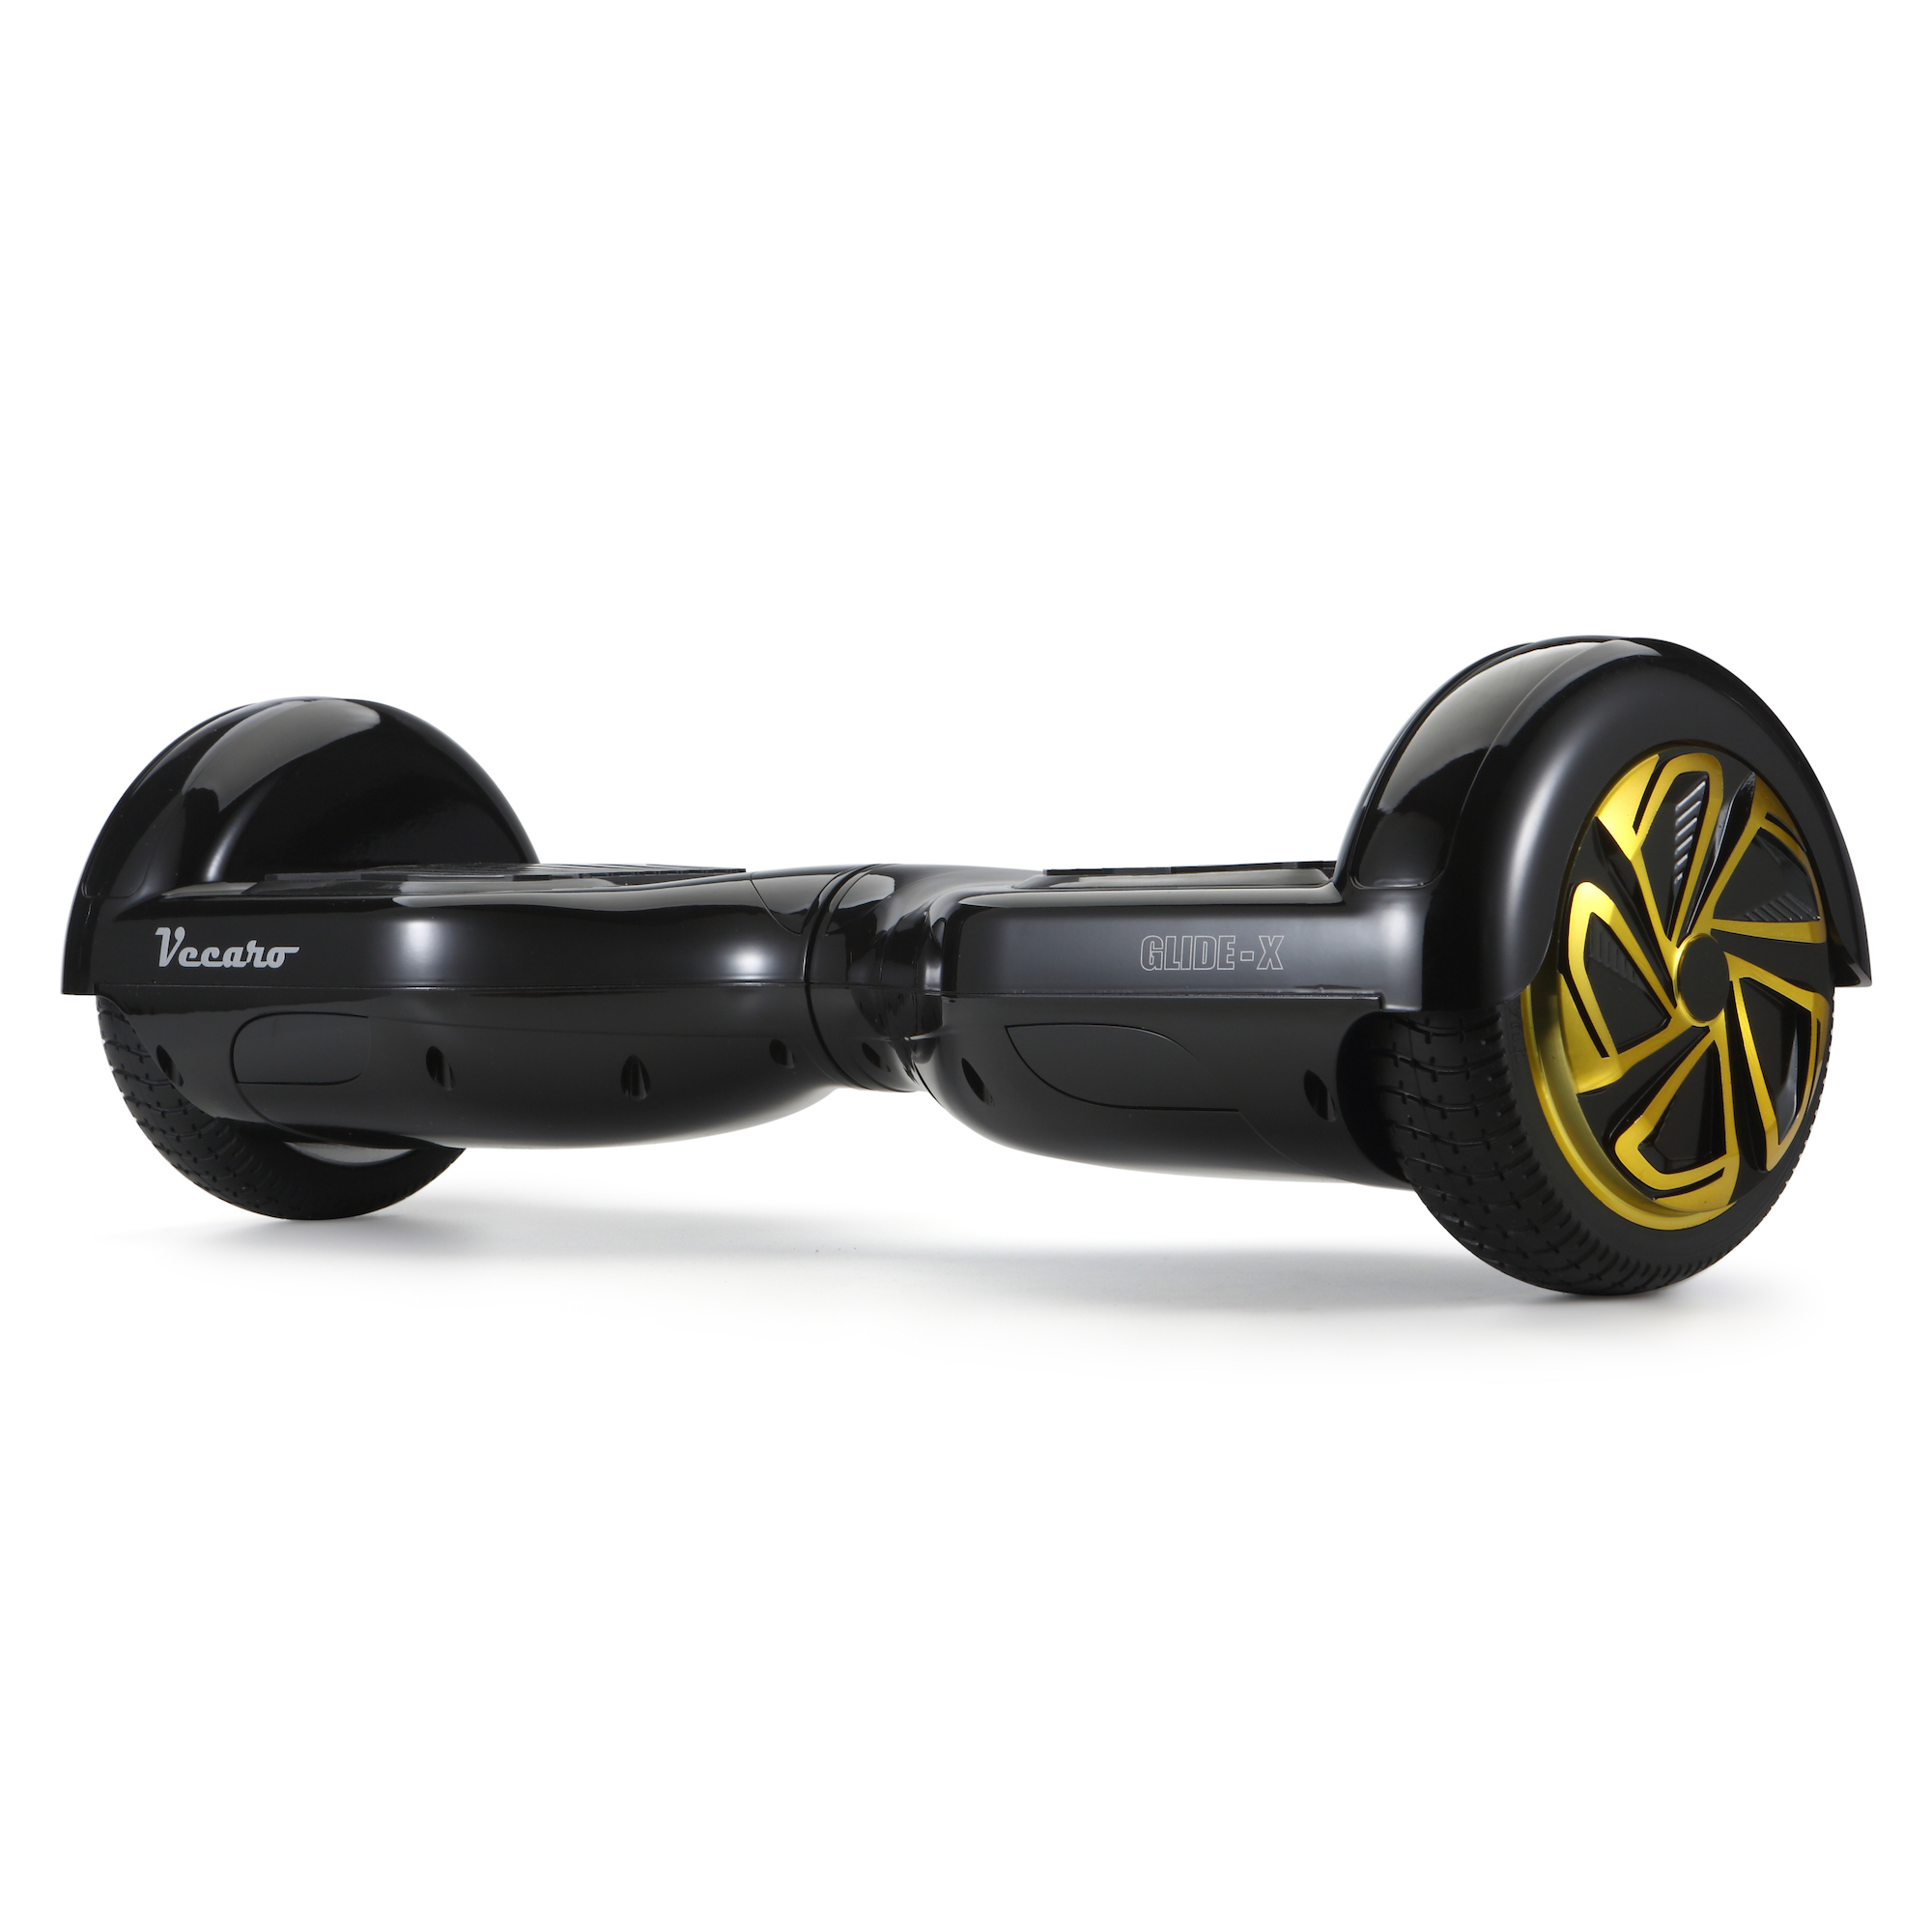 Glide-X (black) front angle hoverboard view